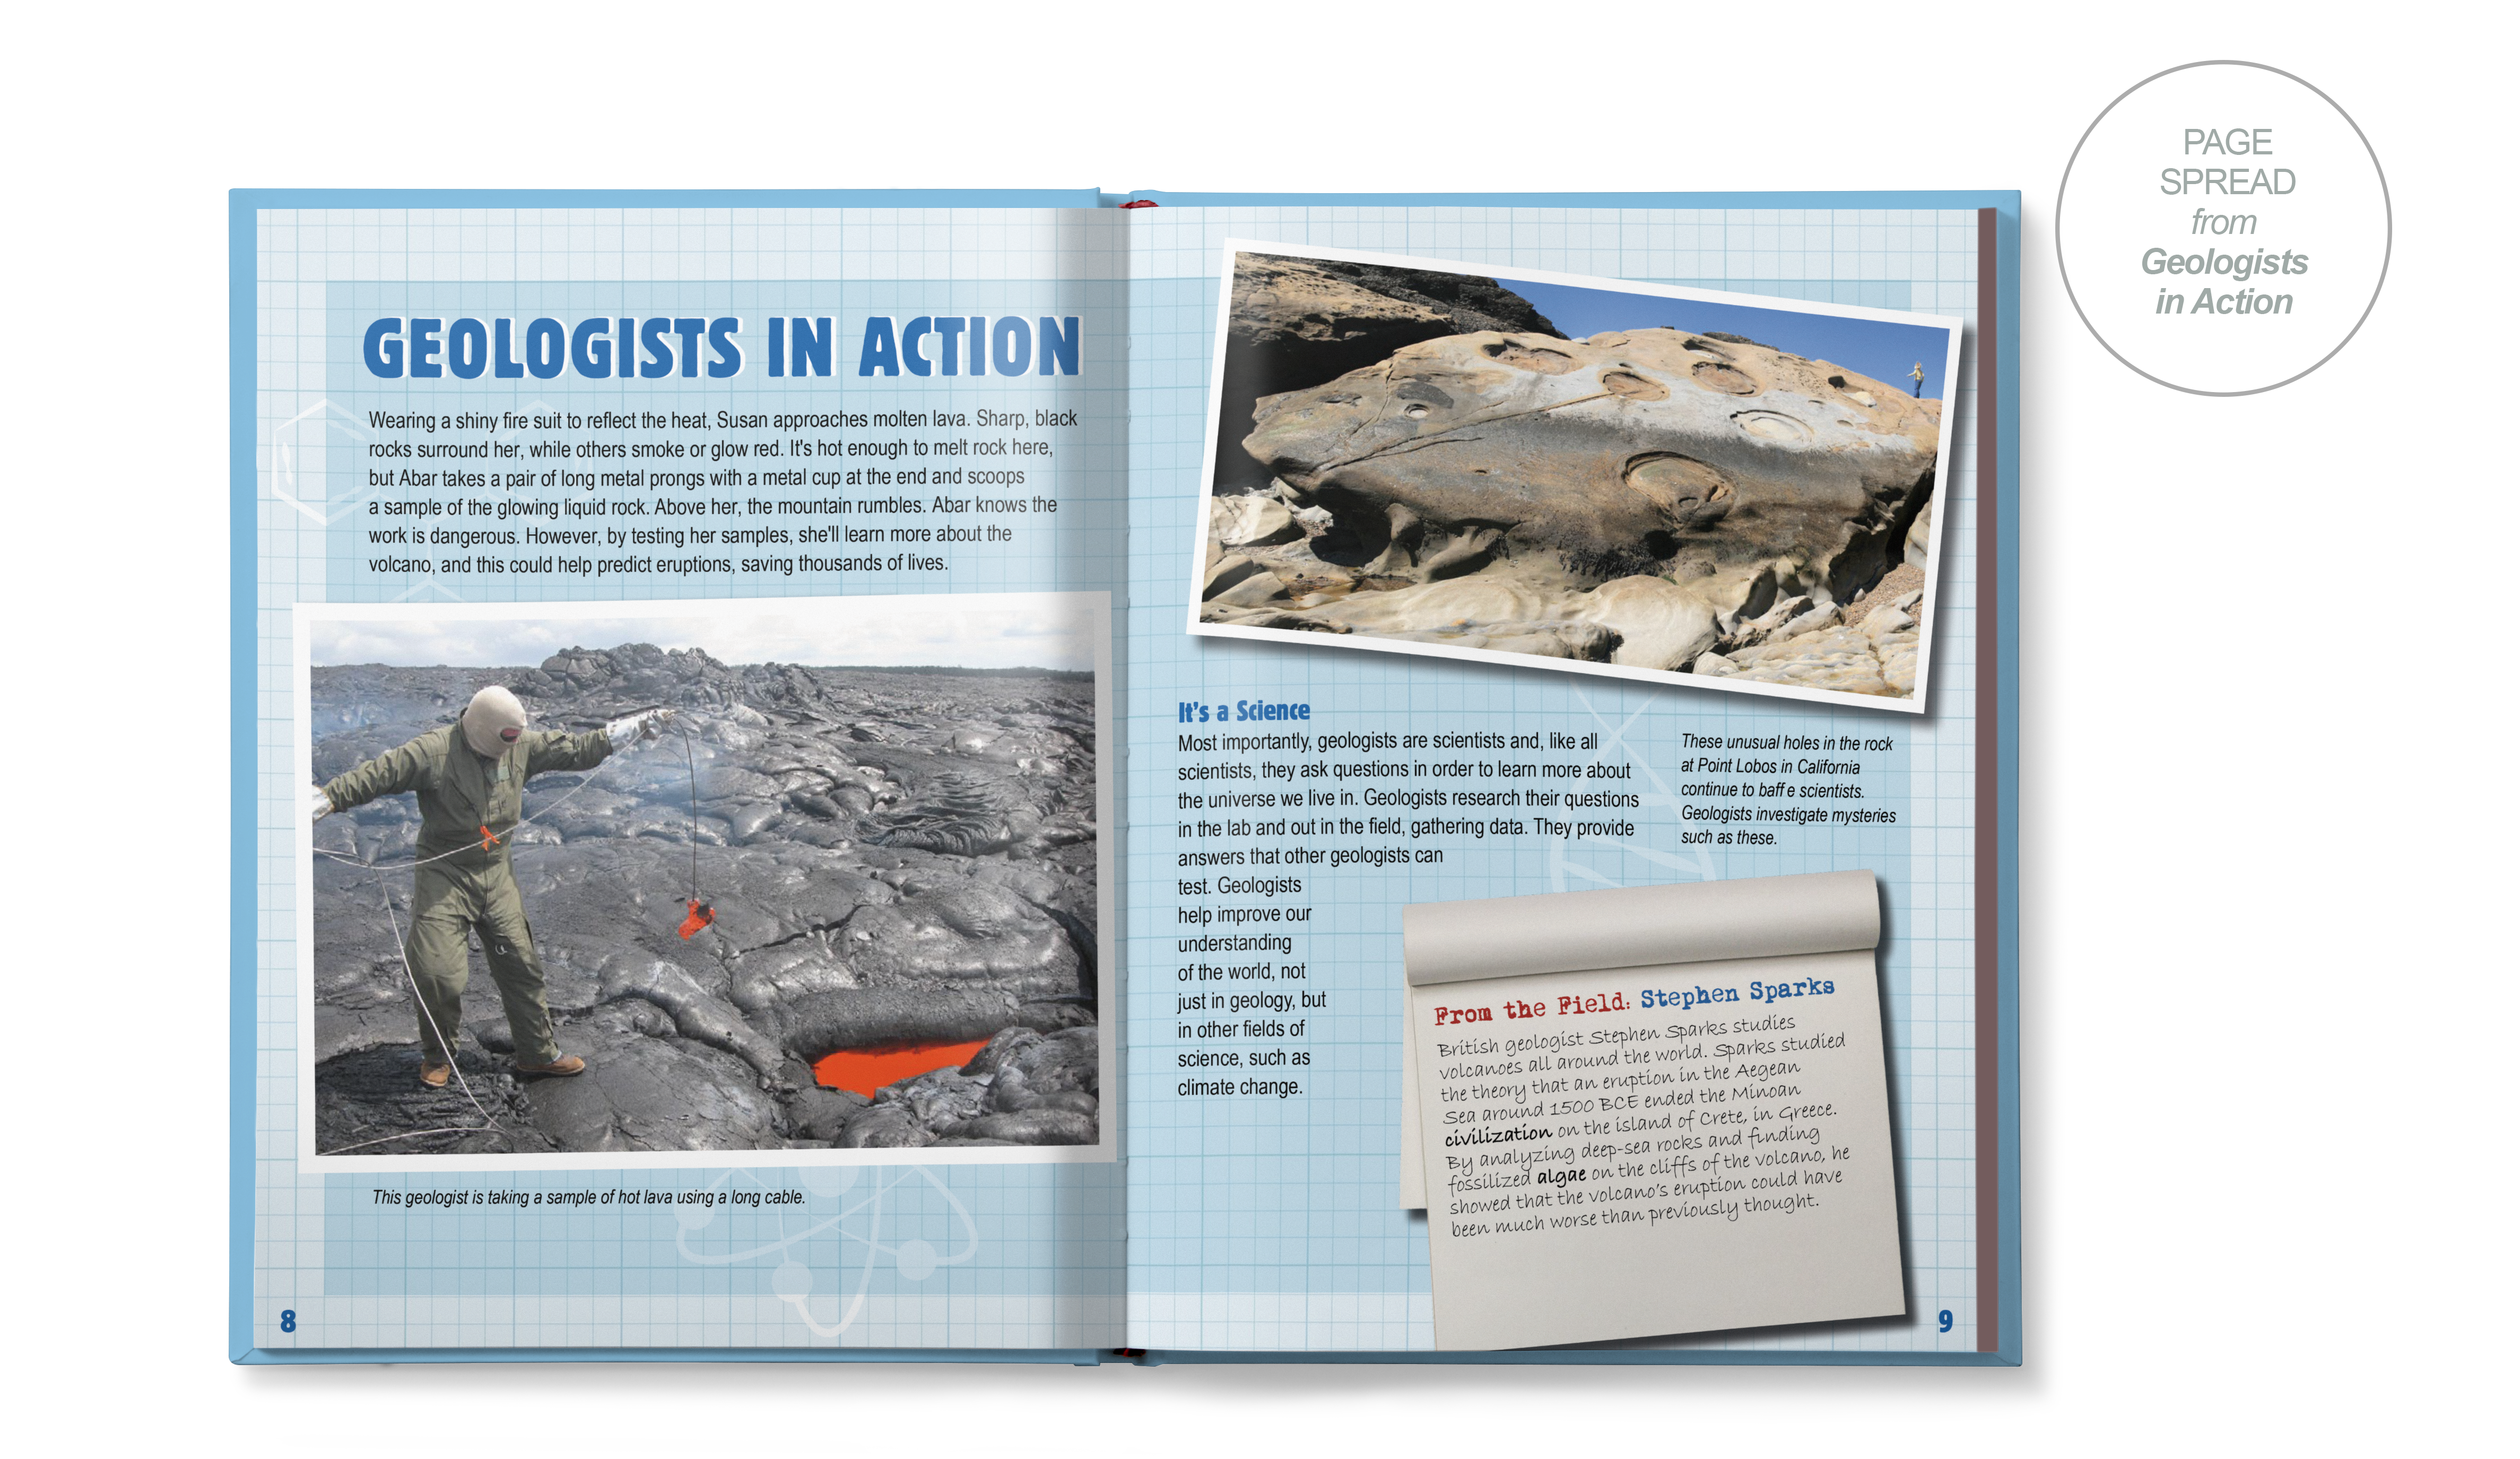 ScientistsinAction_spread